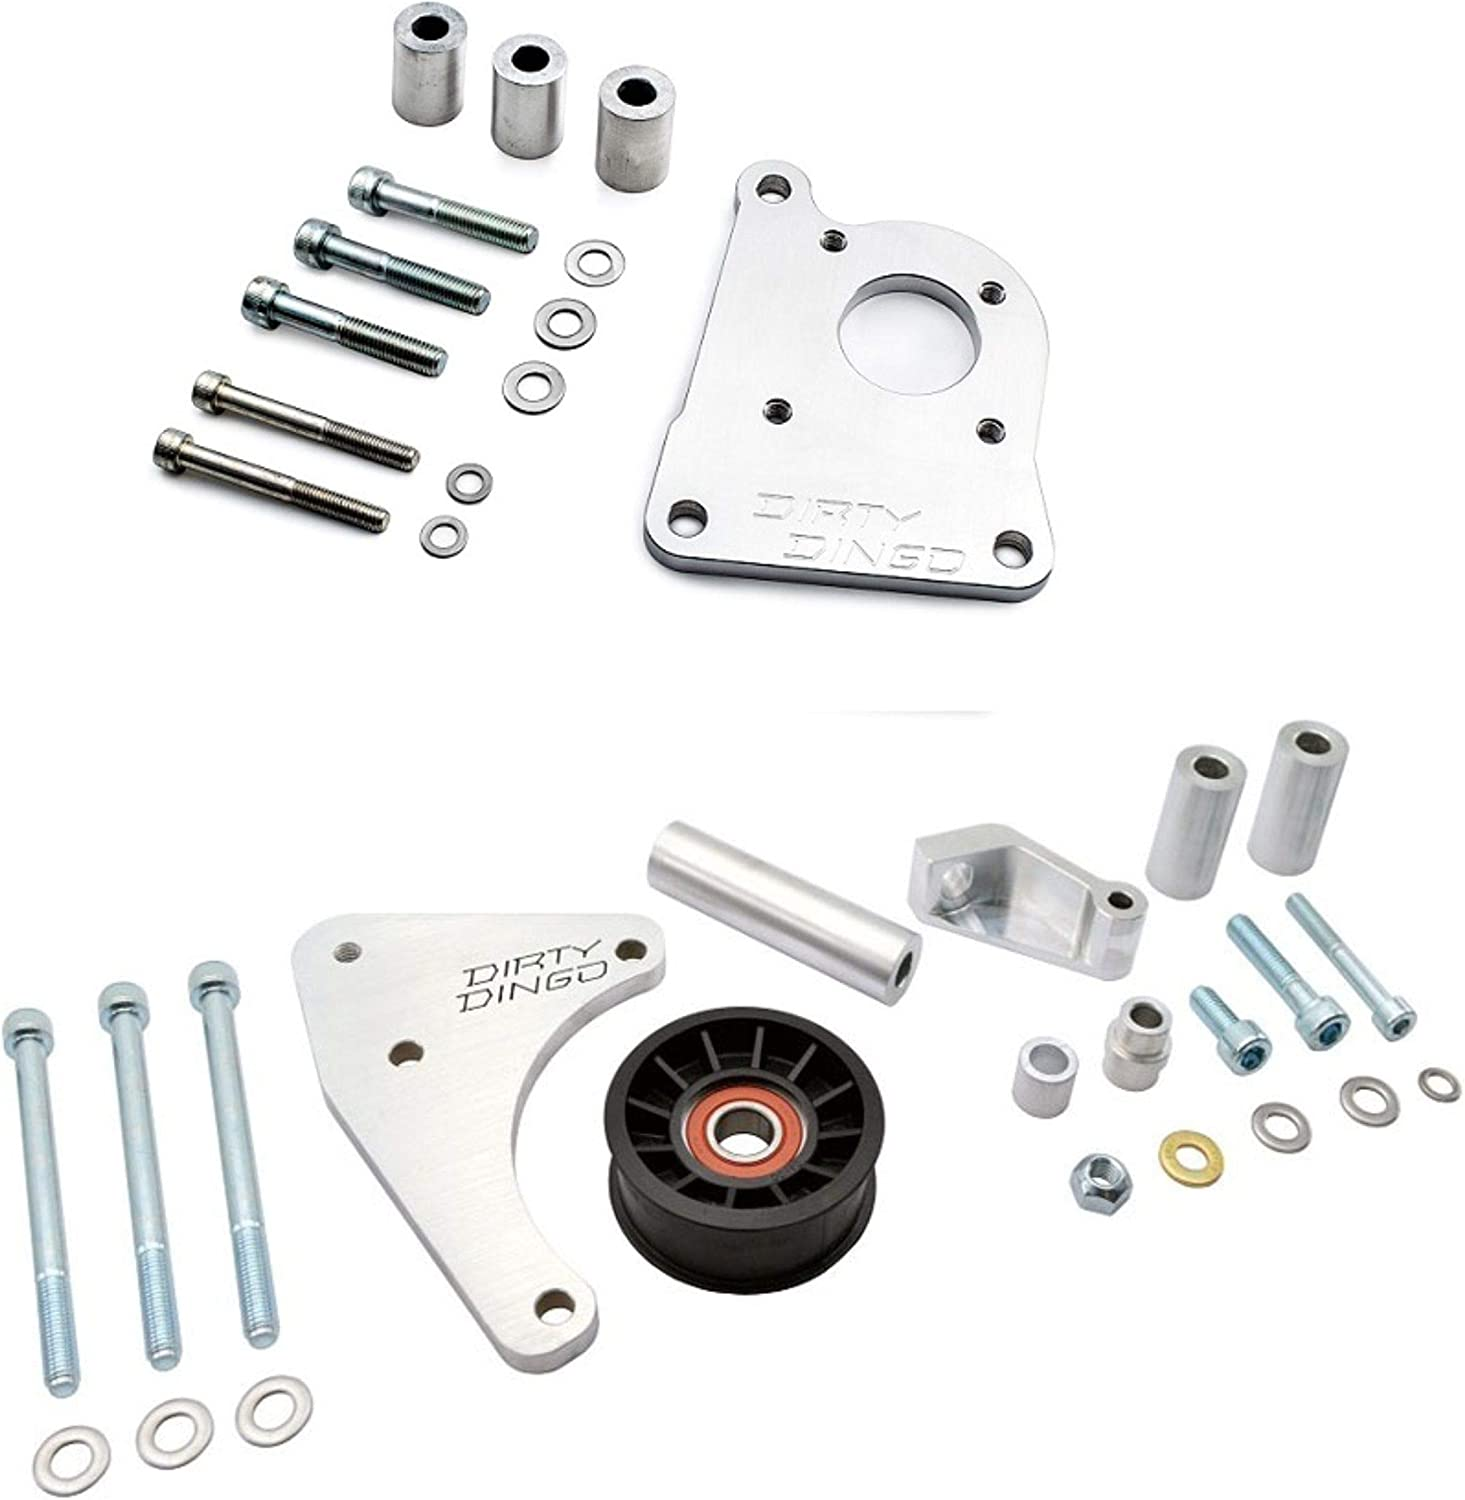 Dirty Dingo LS1 Style Close Fit Power Steering//Low Mount Alt Billet Truck Spacing Combo Kit